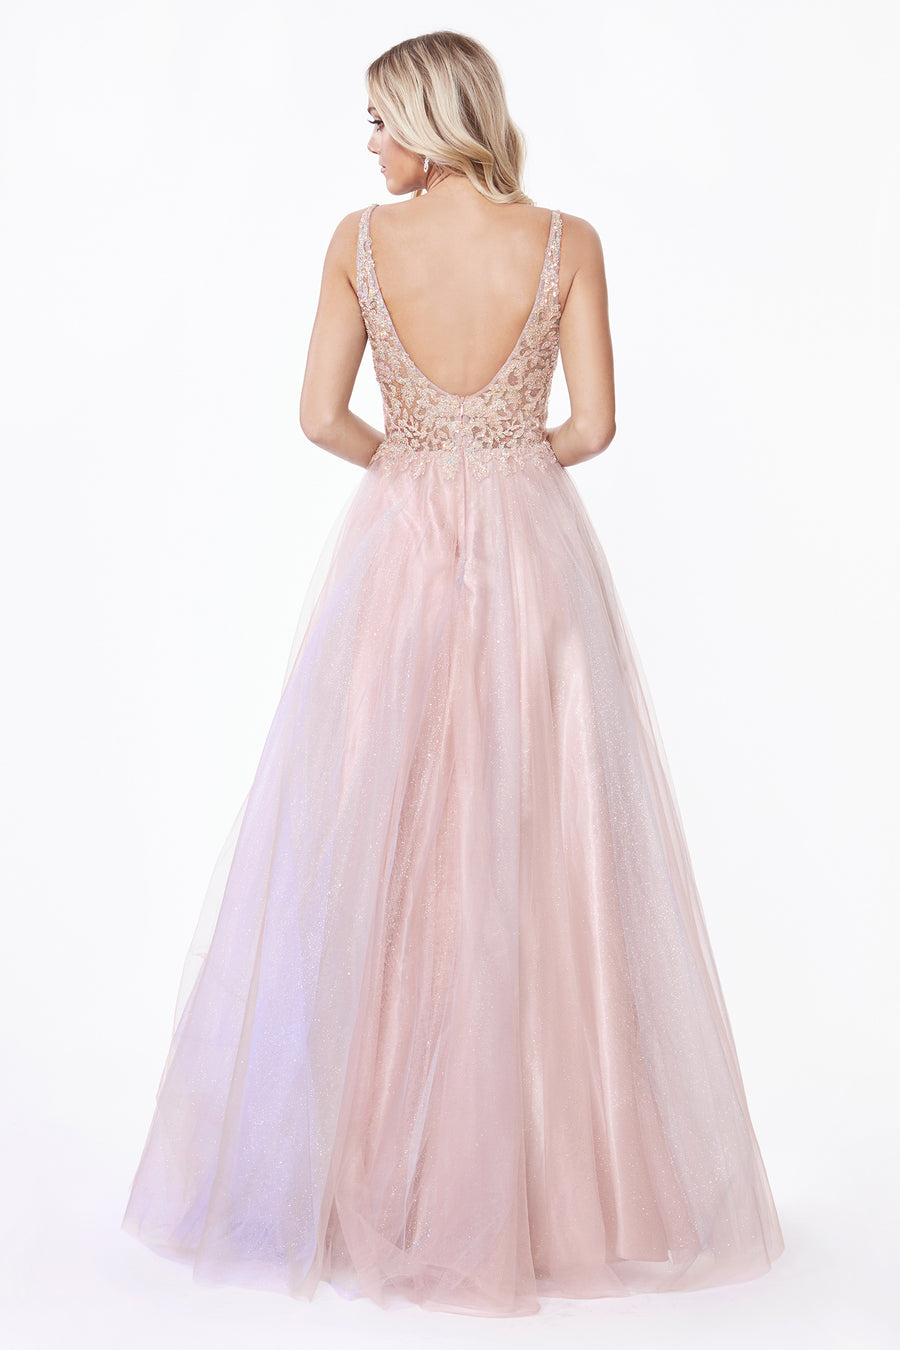 AB198 A-line layered tulle gown with beaded floral applique bodice and open back.